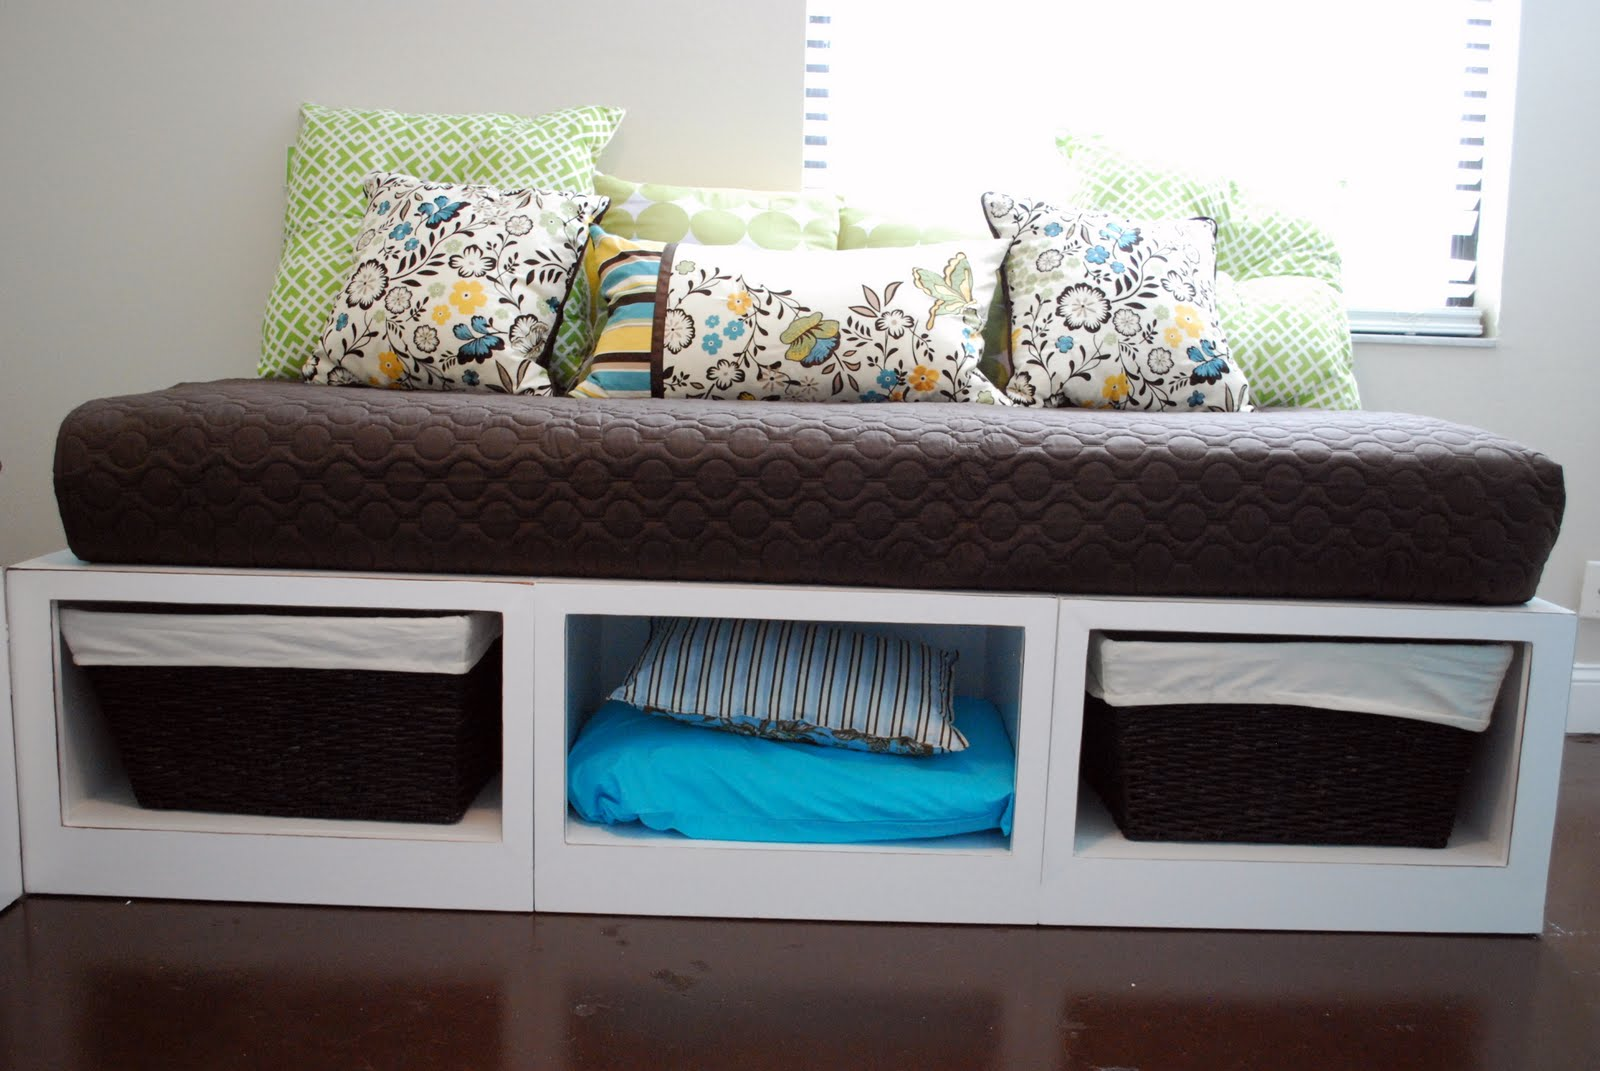 Daybed Frame Ana White | Stratton Daybeds Times Two - Diy Projects